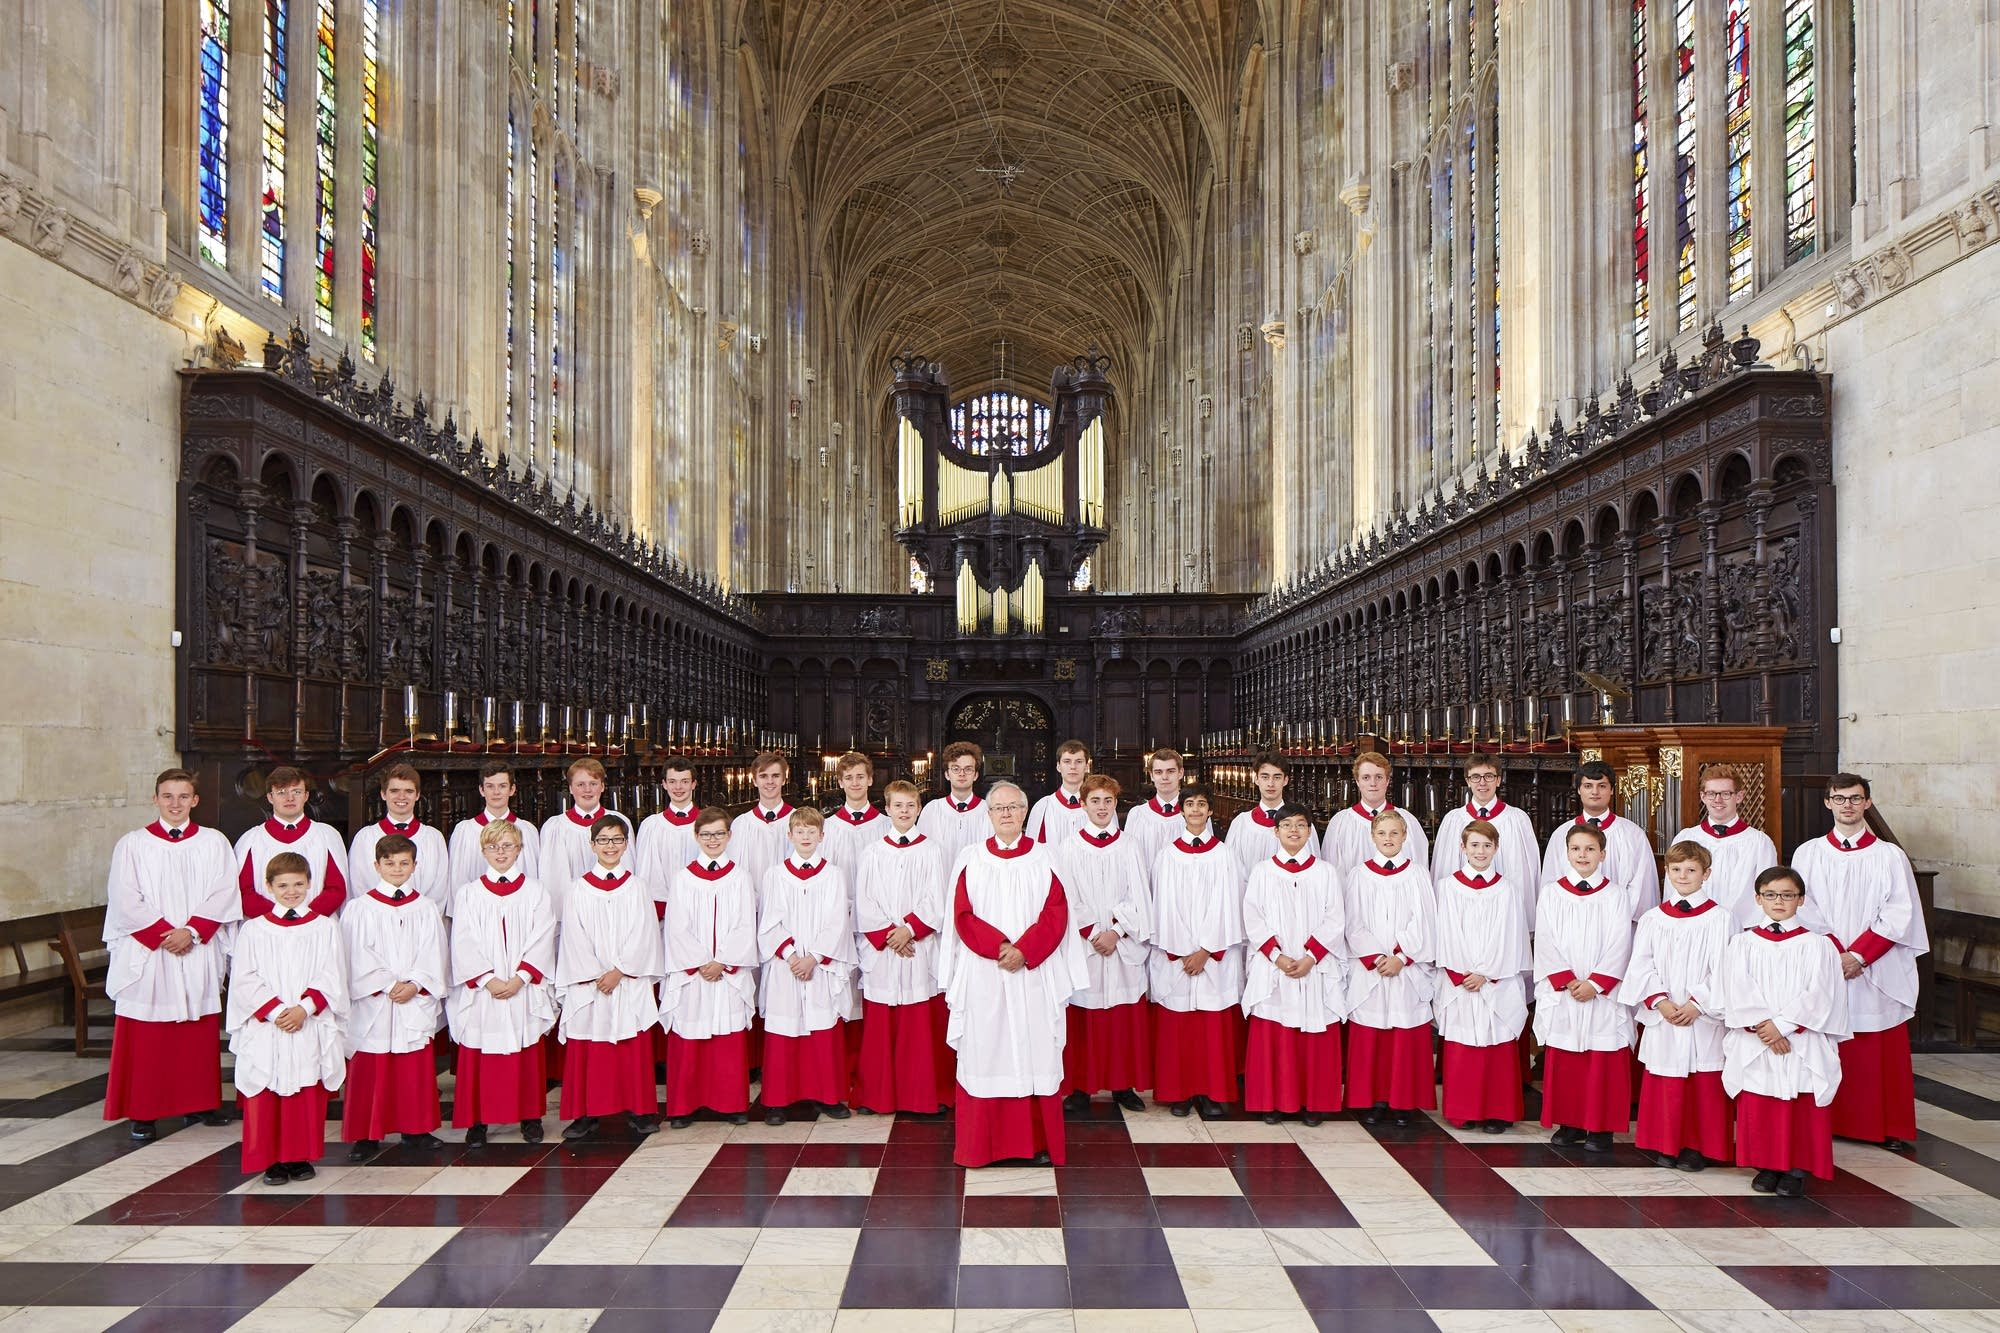 Festival of Nine Lessons and Carols at King's College in Cambridge, England